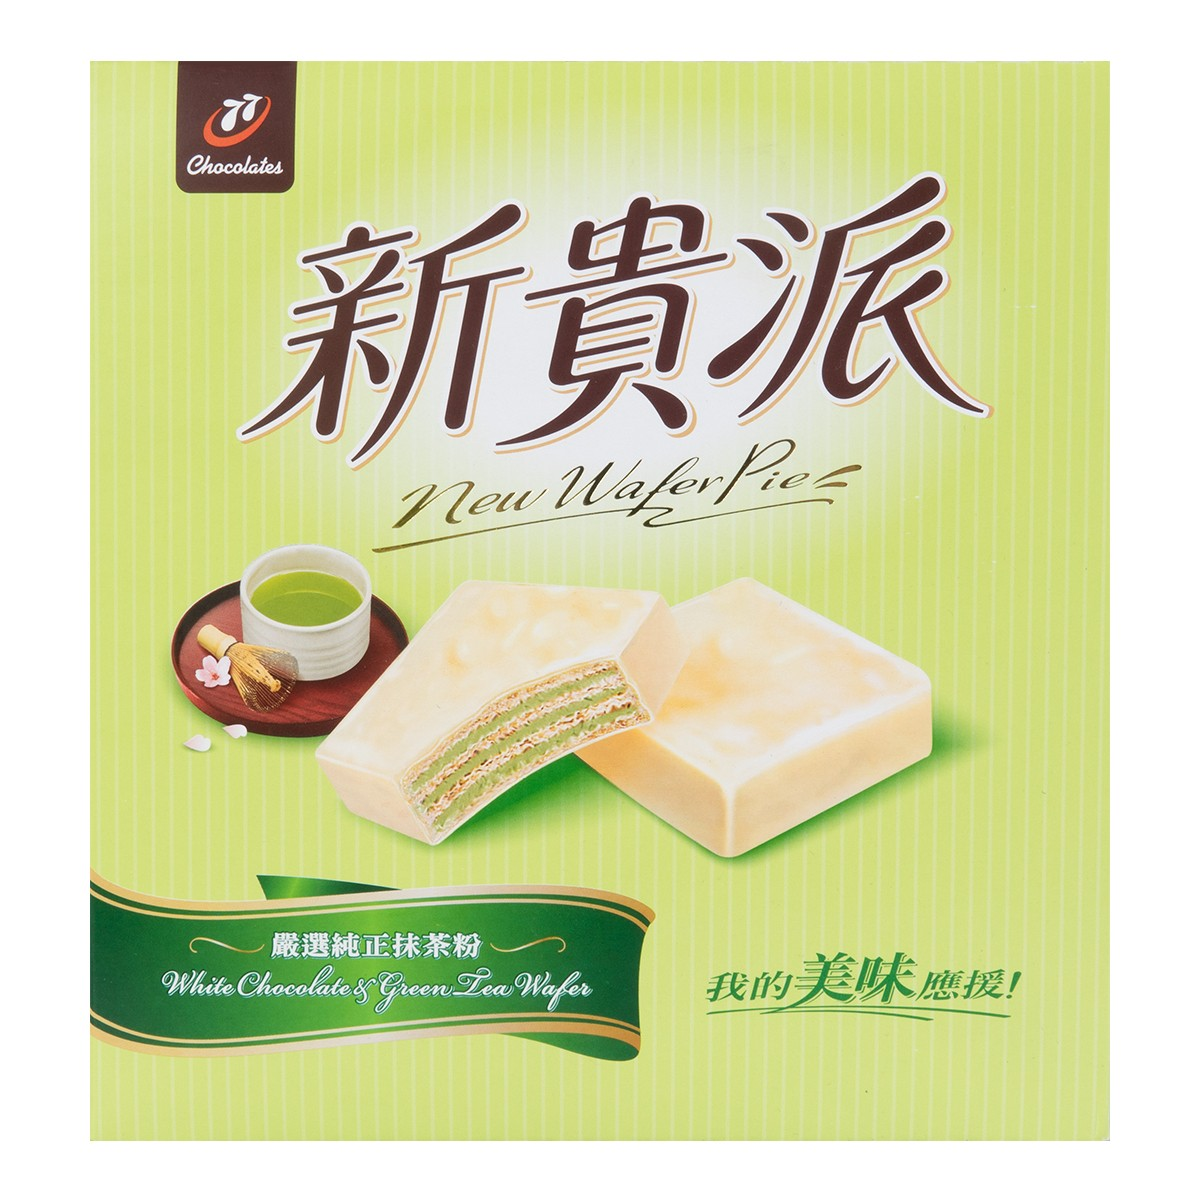 77 New Wafer Pie White Chocolate Green Tea Wafer pie 225g